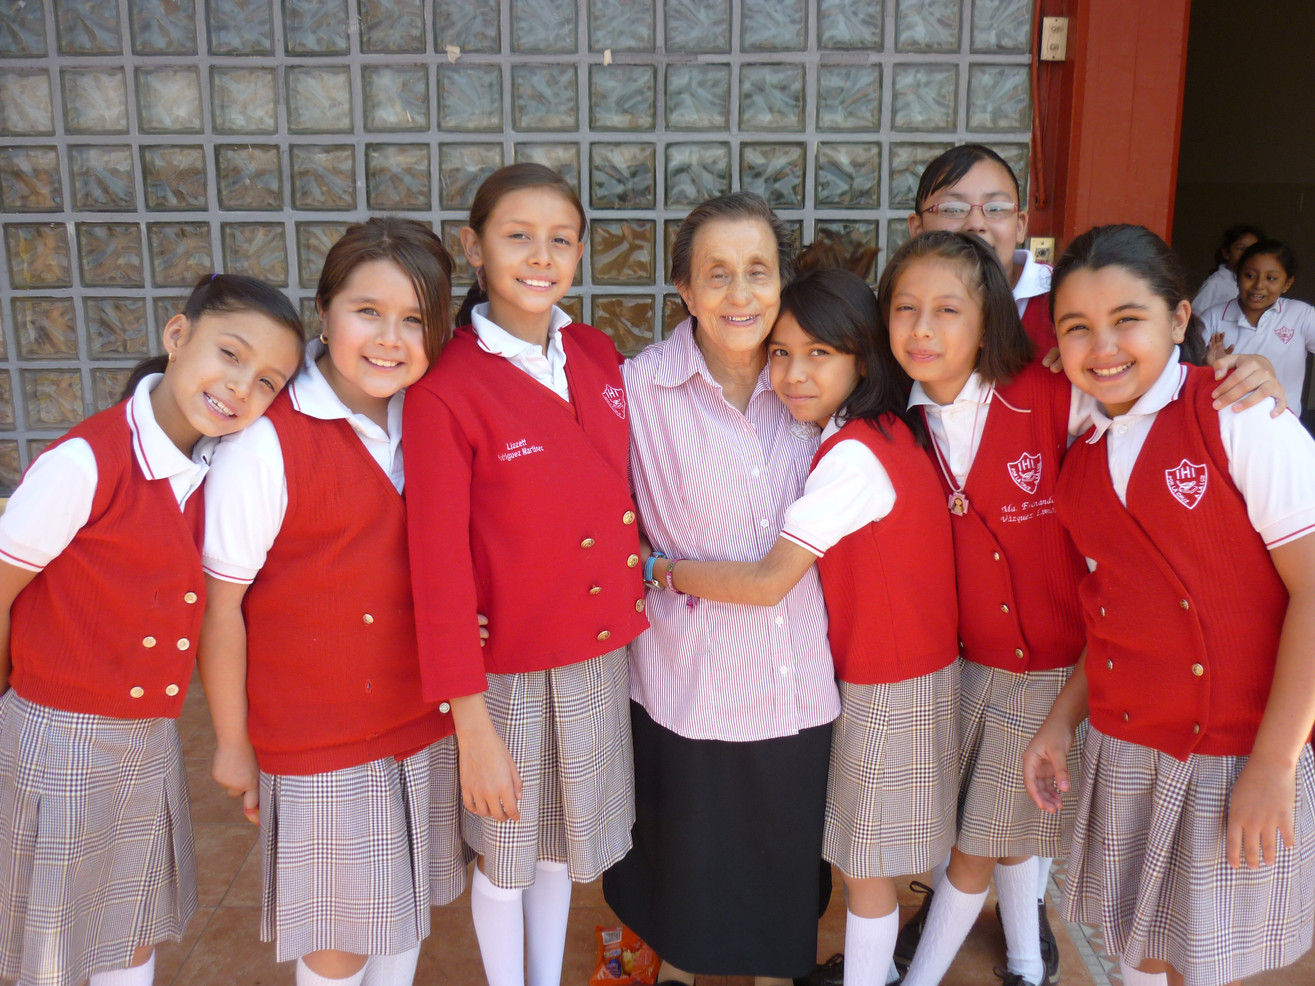 In the United States, Incarnate Word Sisters taught primarily in parish schools. In Mexico, schools were opened and operated with Congregational resources and buildings built with Congregational funds. The CCVI school system in Mexico (Colegios CCVI) now includes eight institutions.